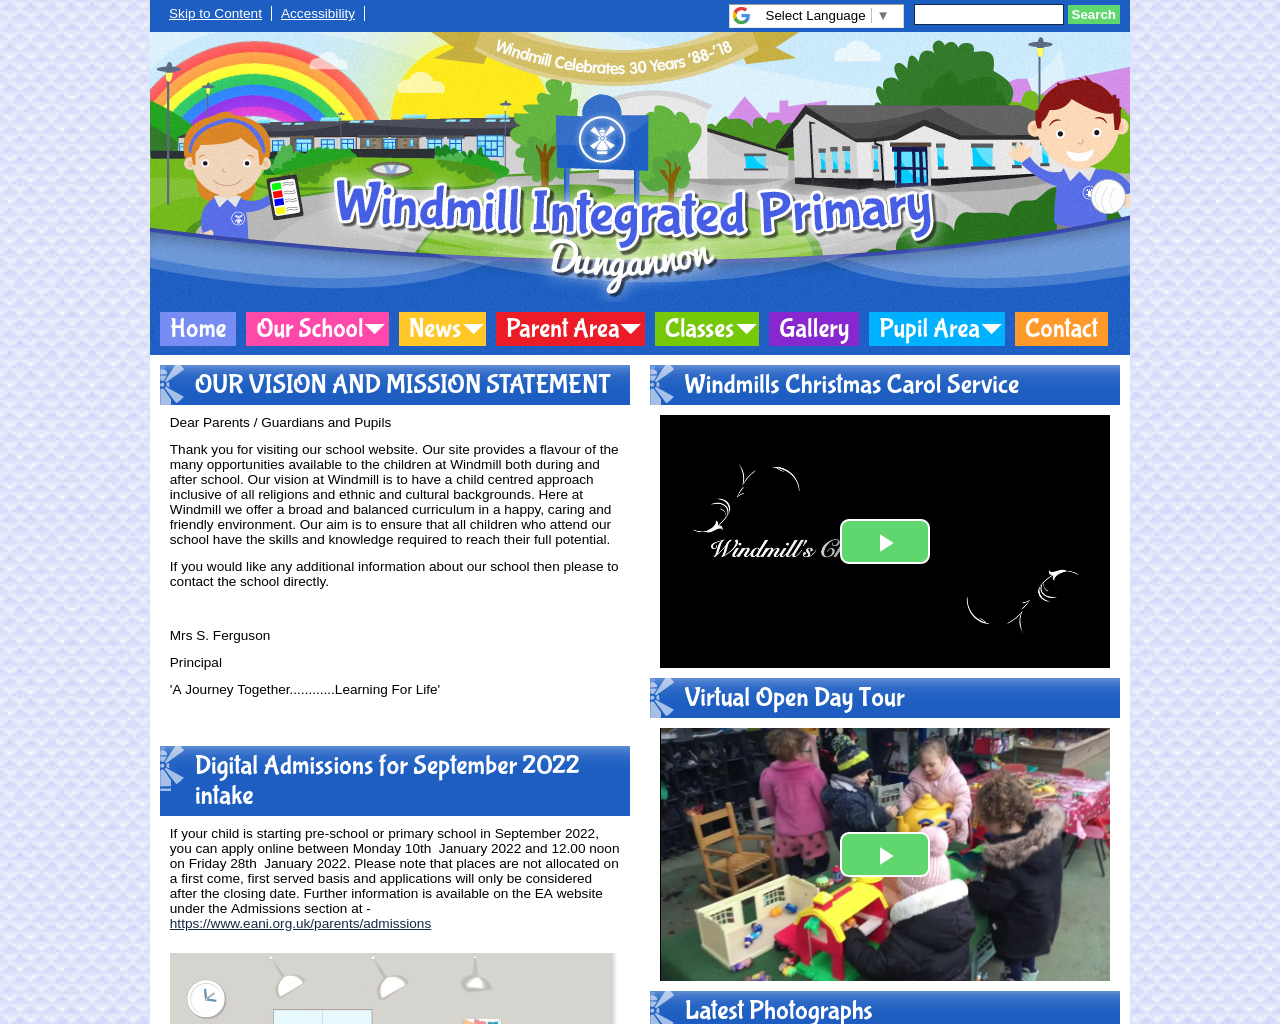 Windmill PS Dungannon